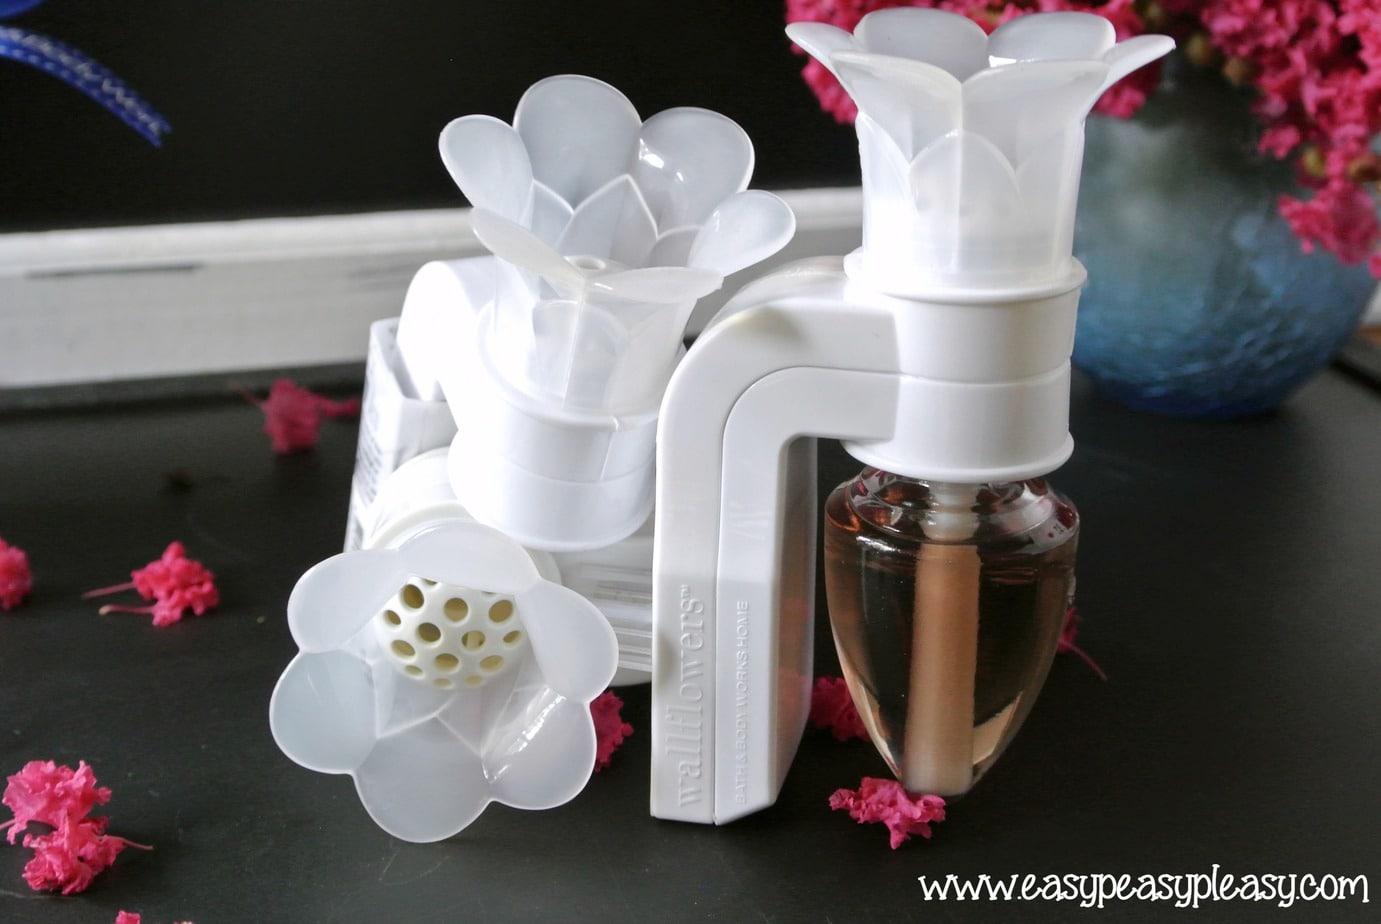 Bath and Body Works Wallflowers idea on EasyPeasyPleasy.com